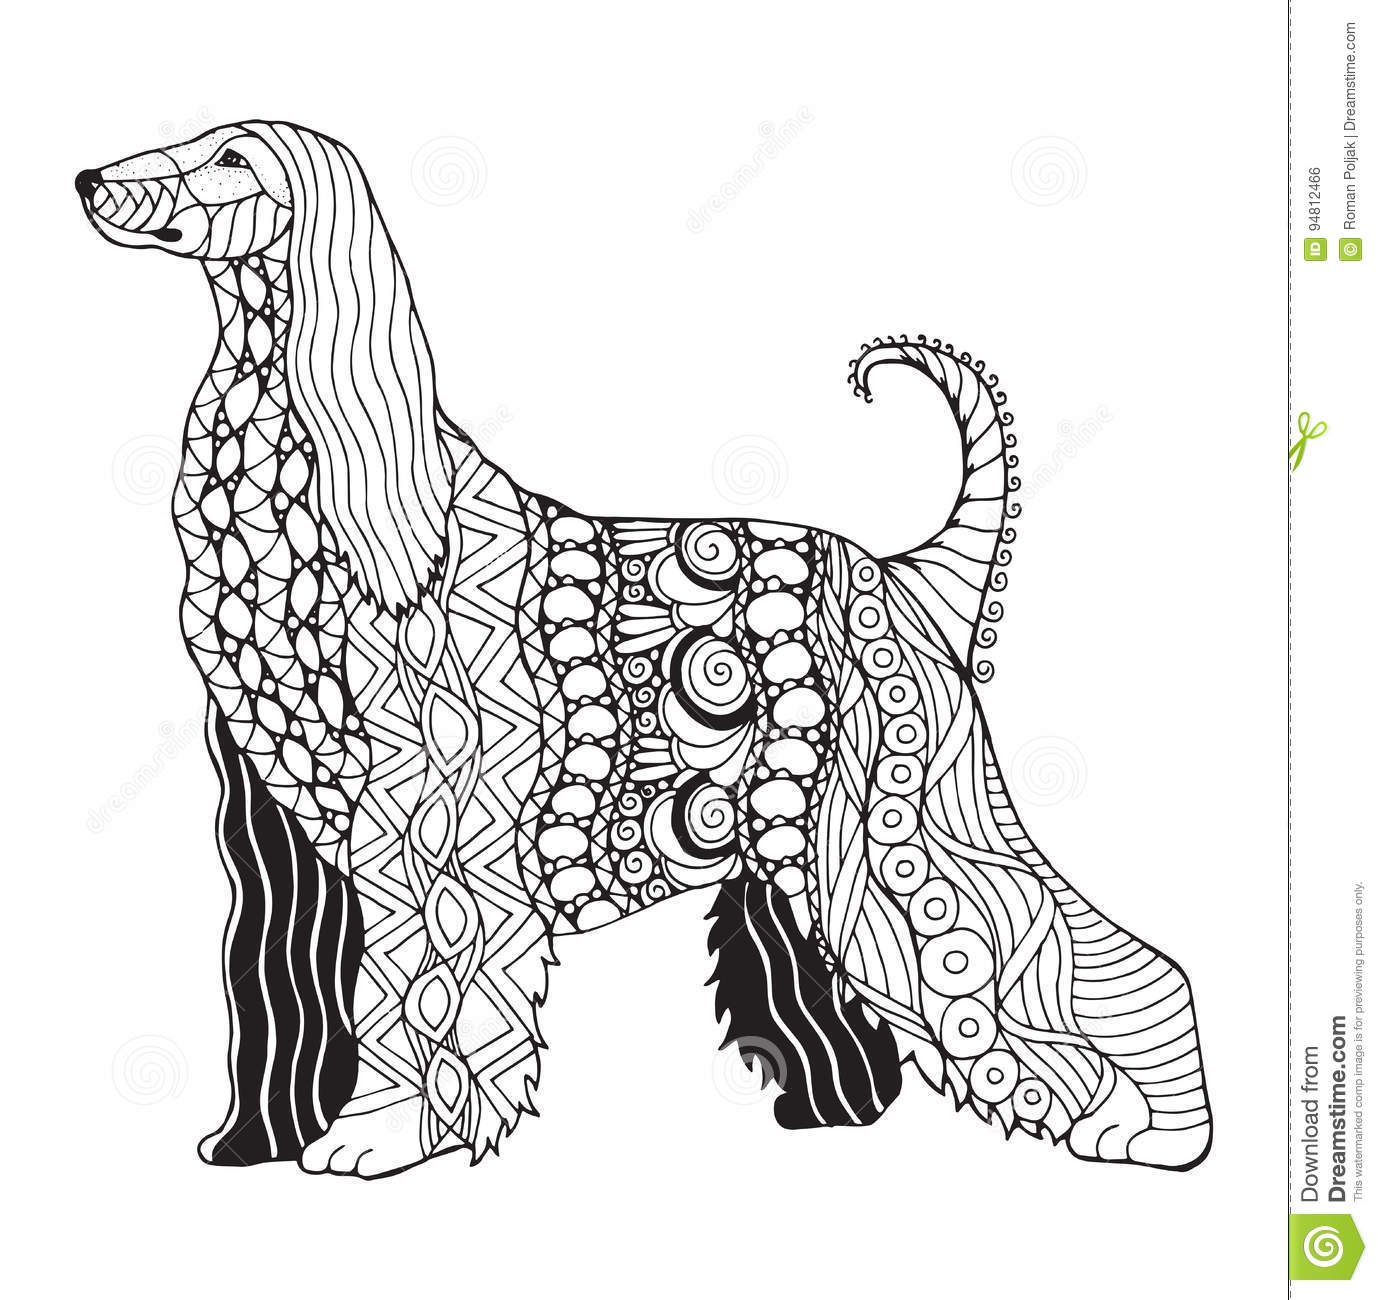 Todd Clipart 20 Fee Cliparts Download Imagenes: Afghan Hound Stock Illustrations